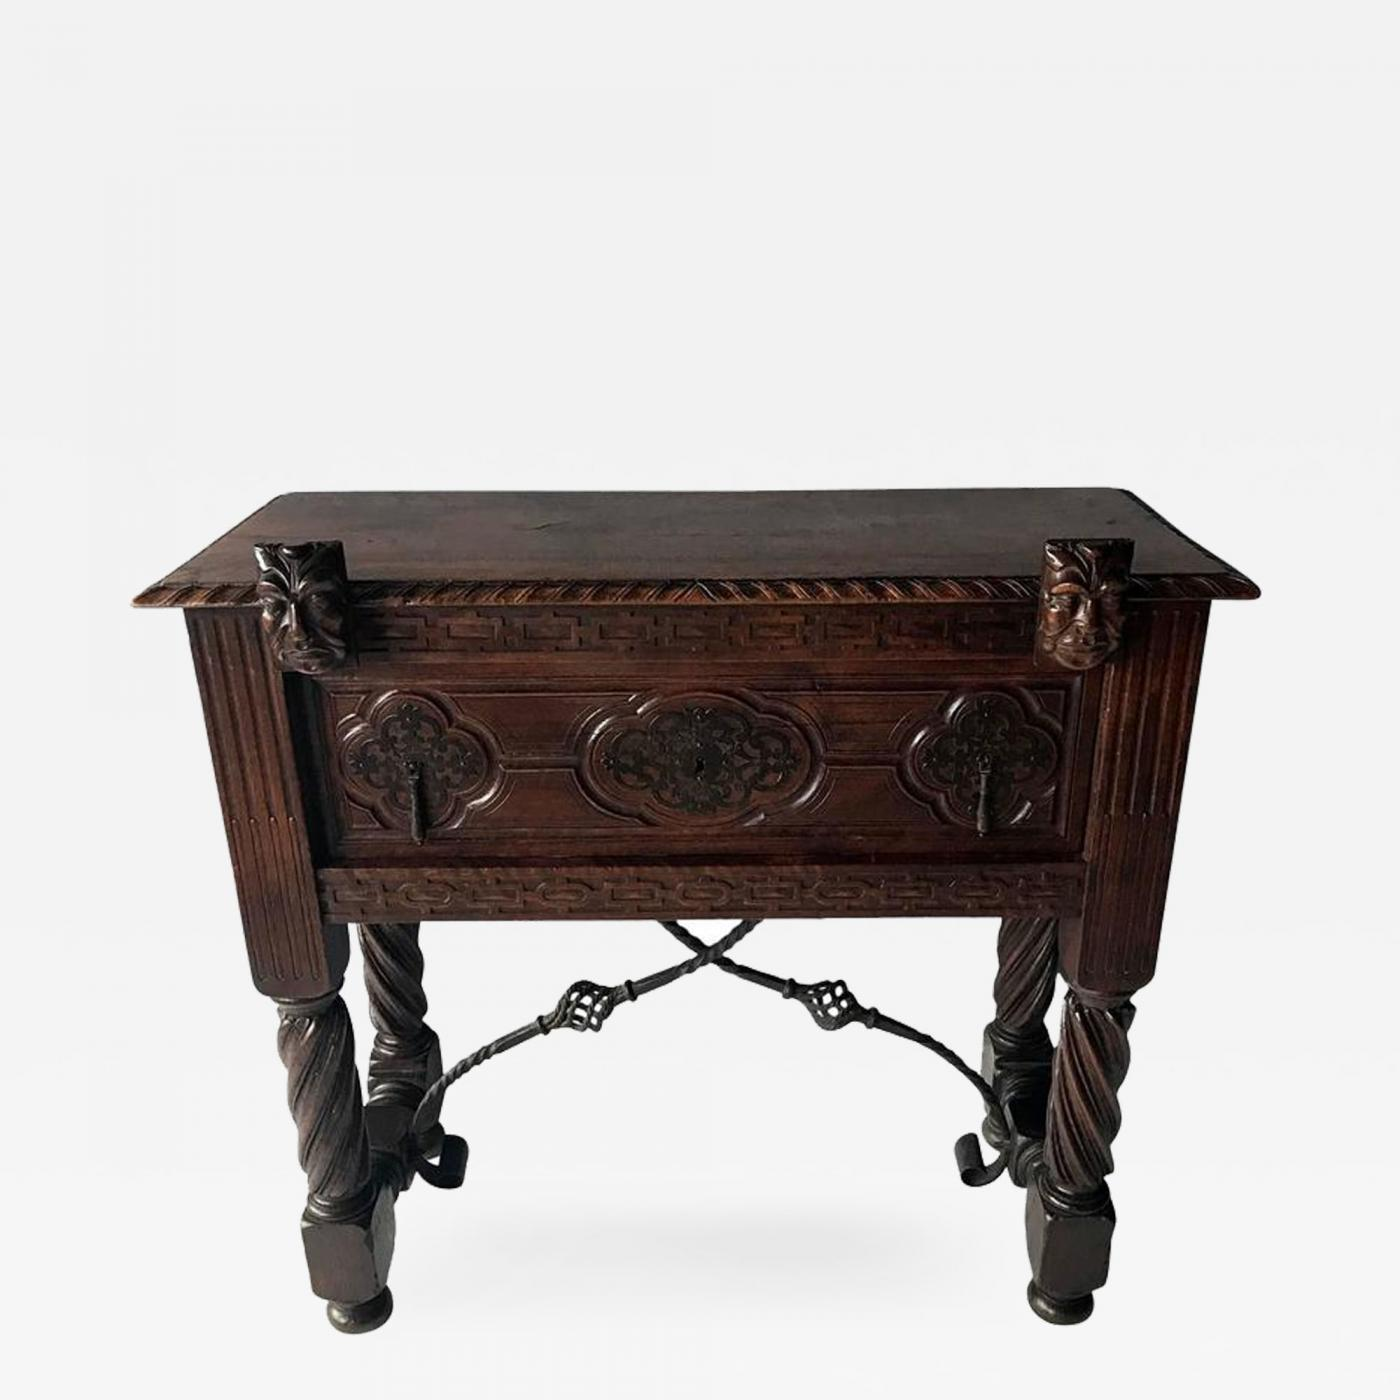 Antique Spanish Colonial Console Table with Drawer